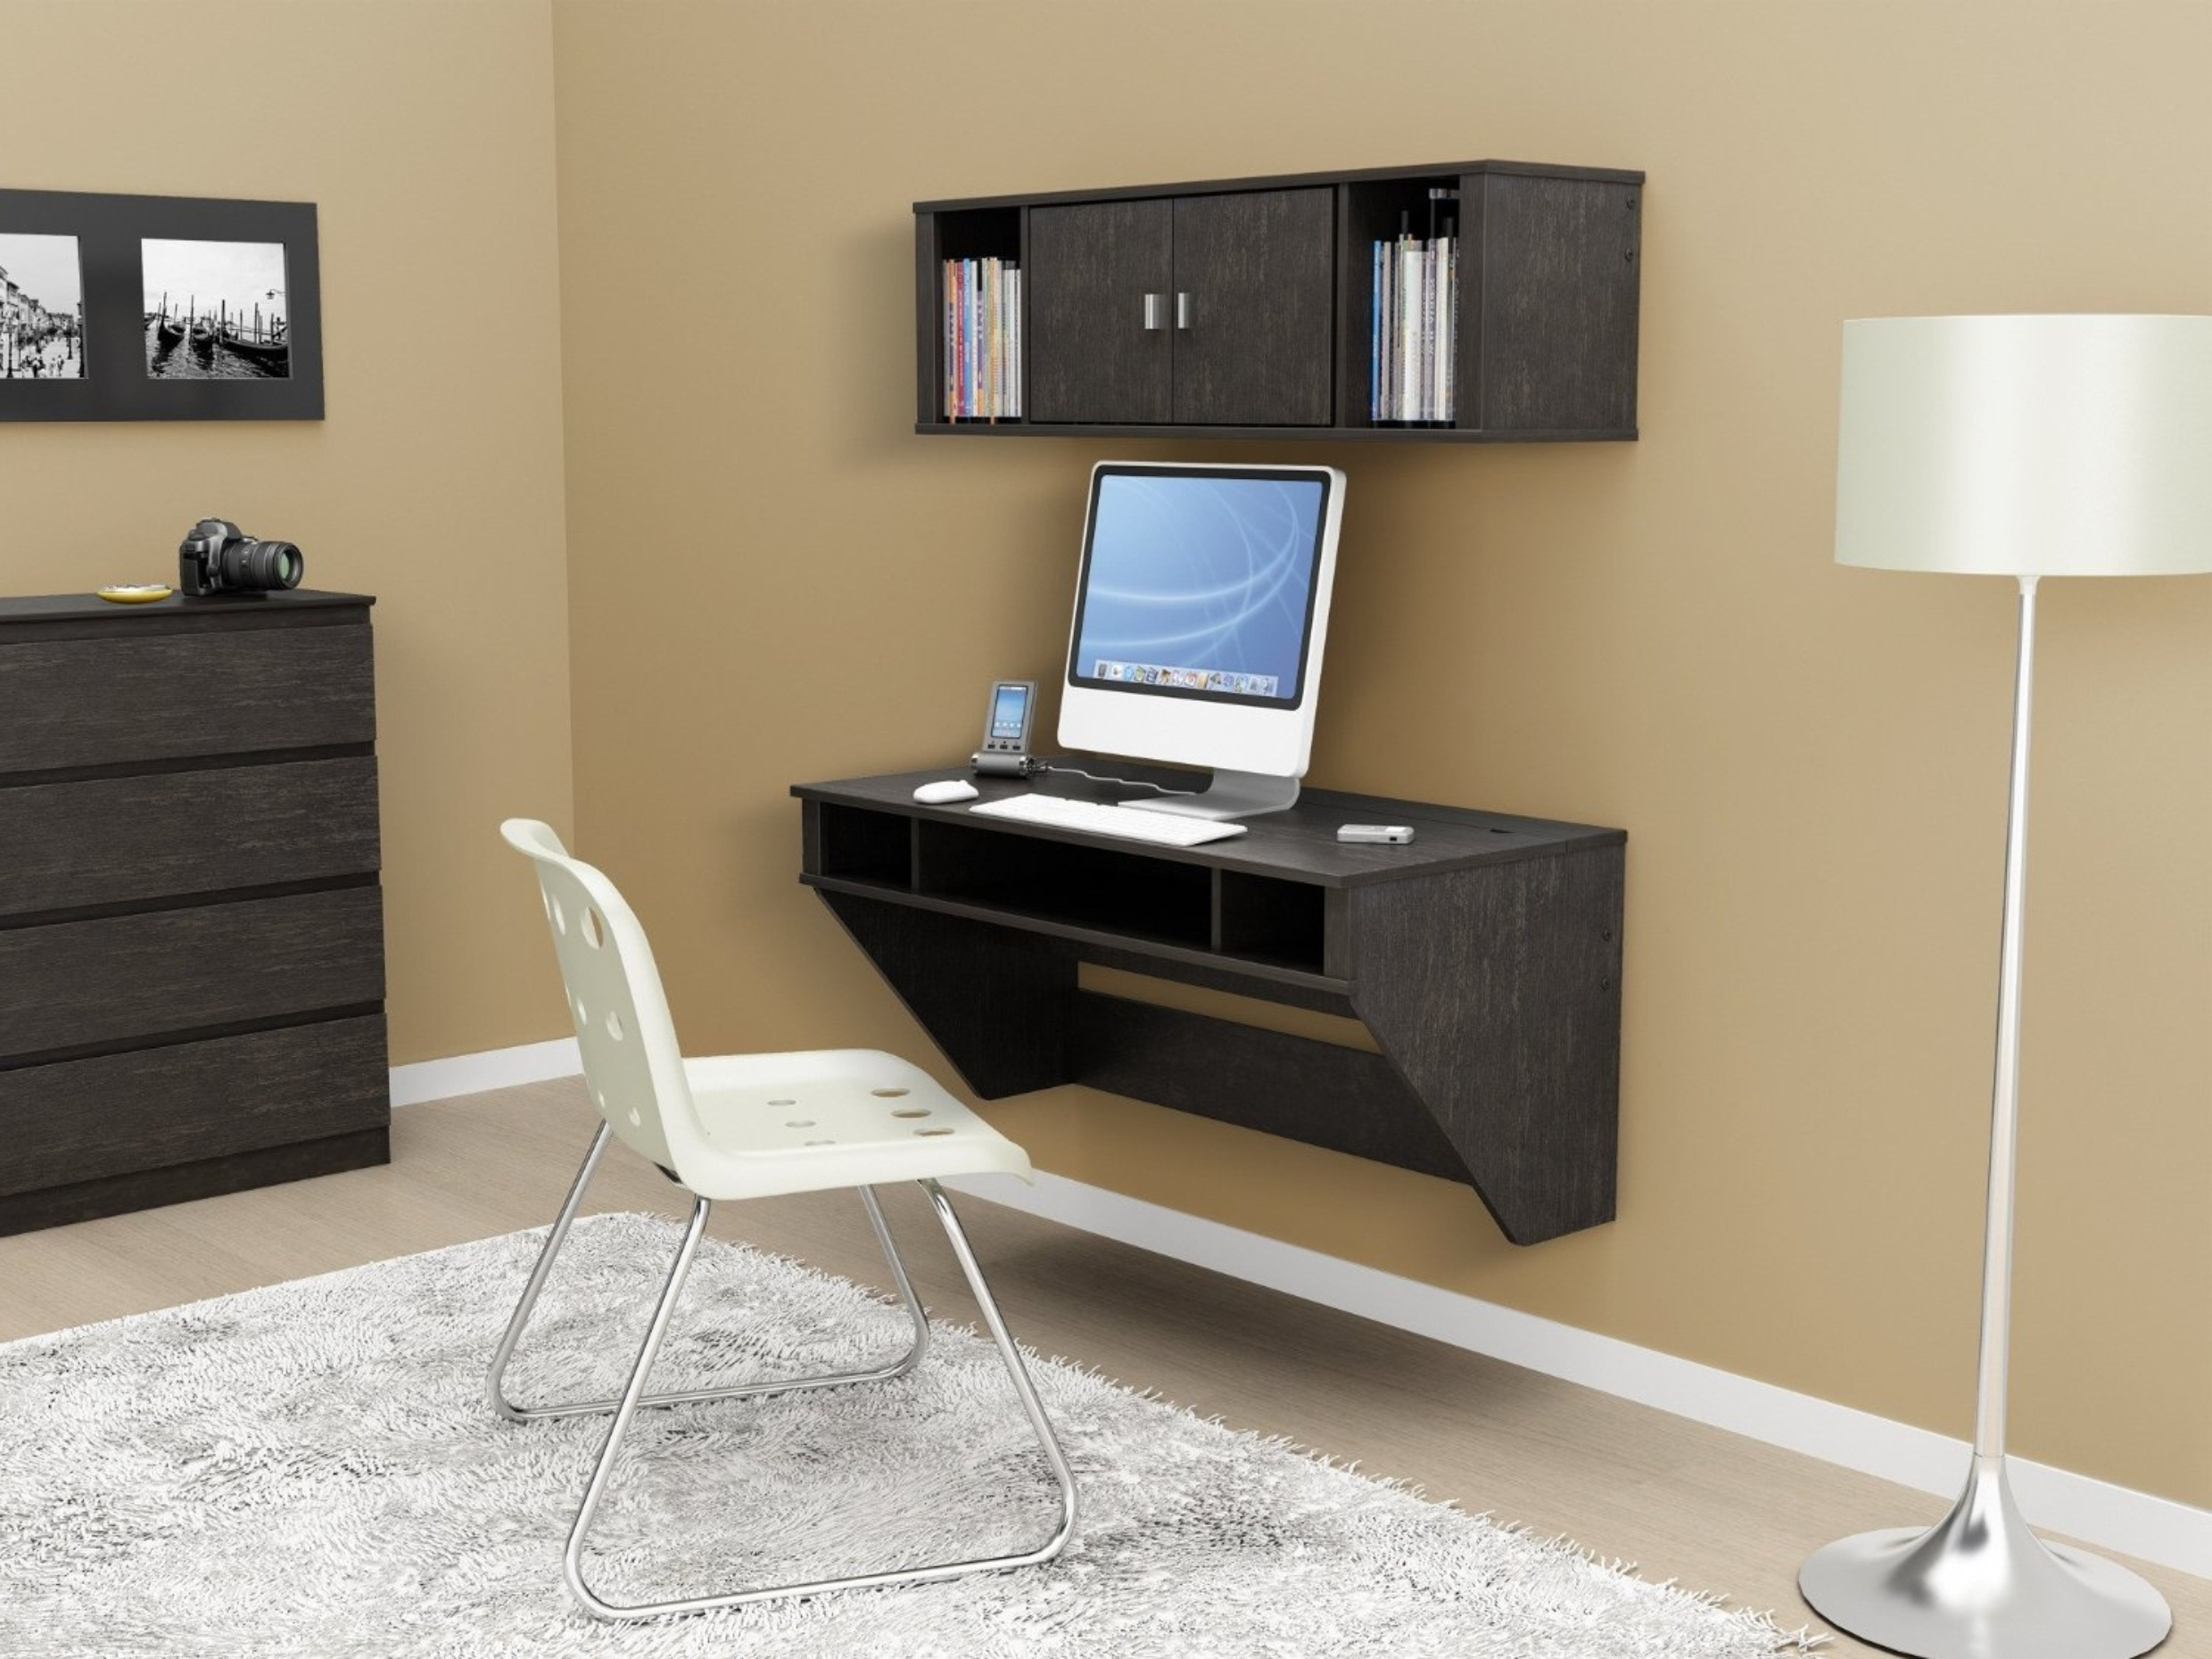 Wall Computer Desks With Regard To Recent Luxury Home Office Ideas With Wall Mount Computer Desk And Floor (View 17 of 20)